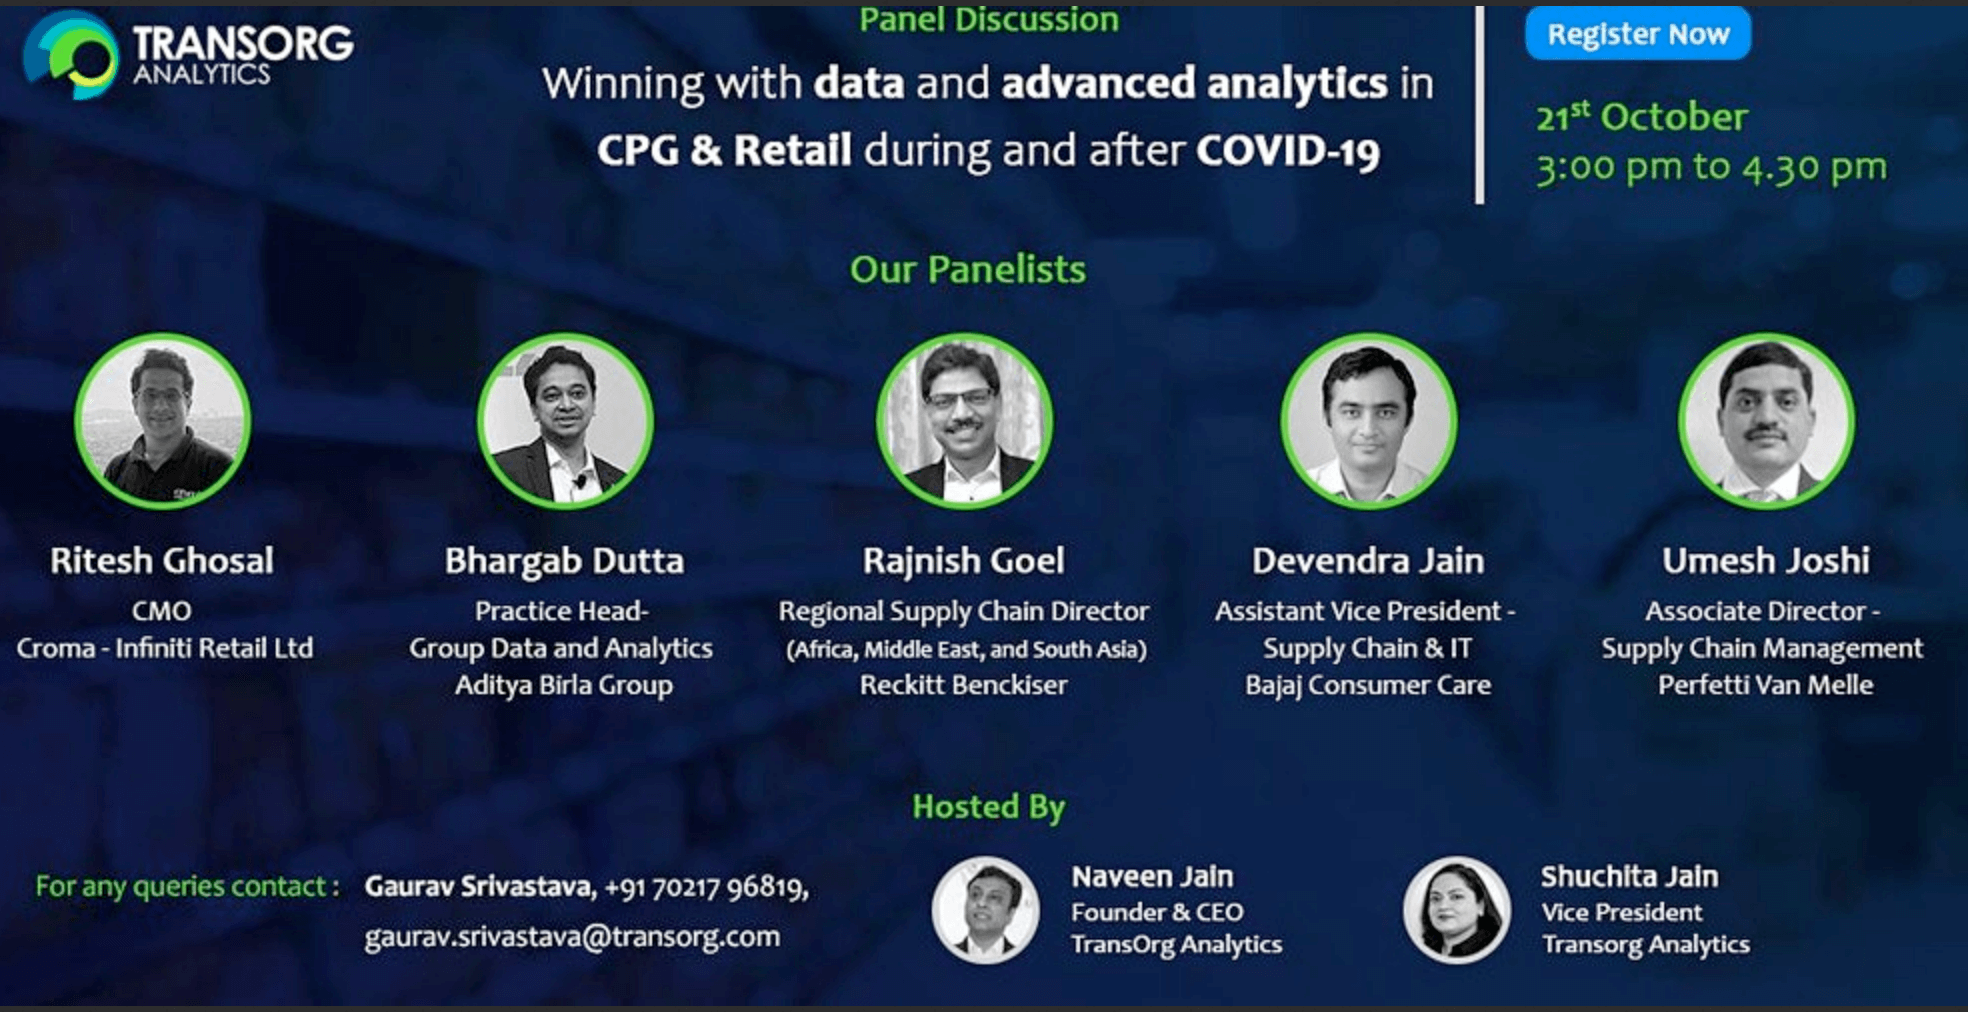 Winning with data and advanced analytics in CPG & Retail during and after COVID-19